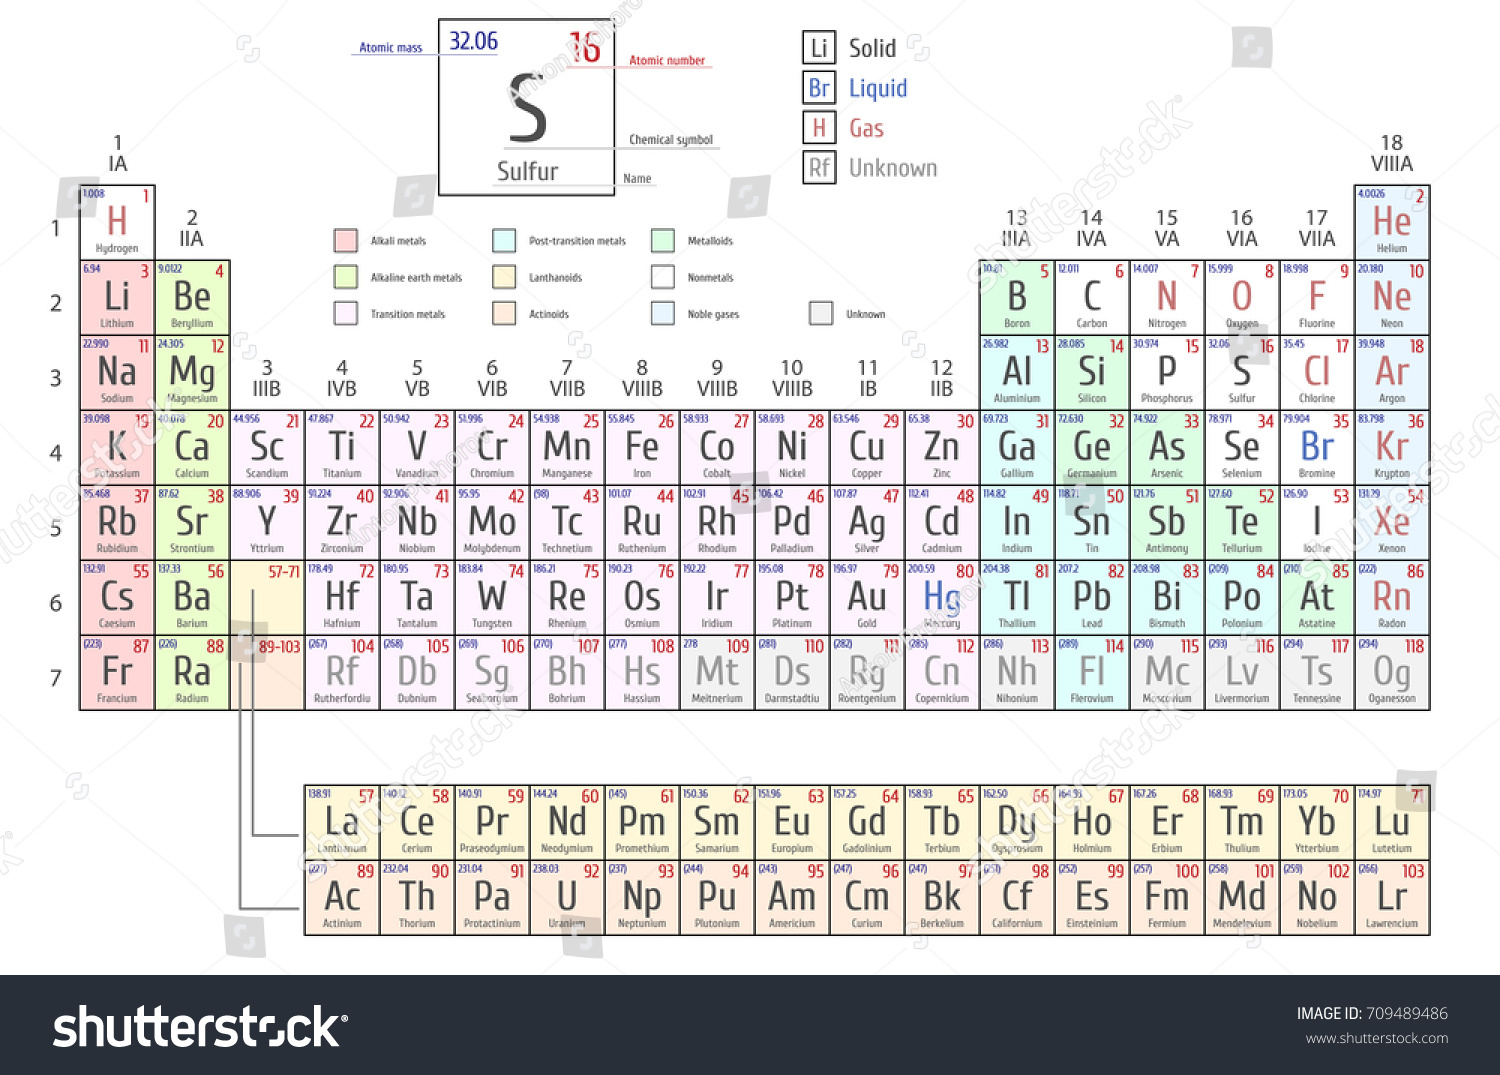 Periodic table elements stock vector 709489486 shutterstock periodic table of the elements gamestrikefo Images